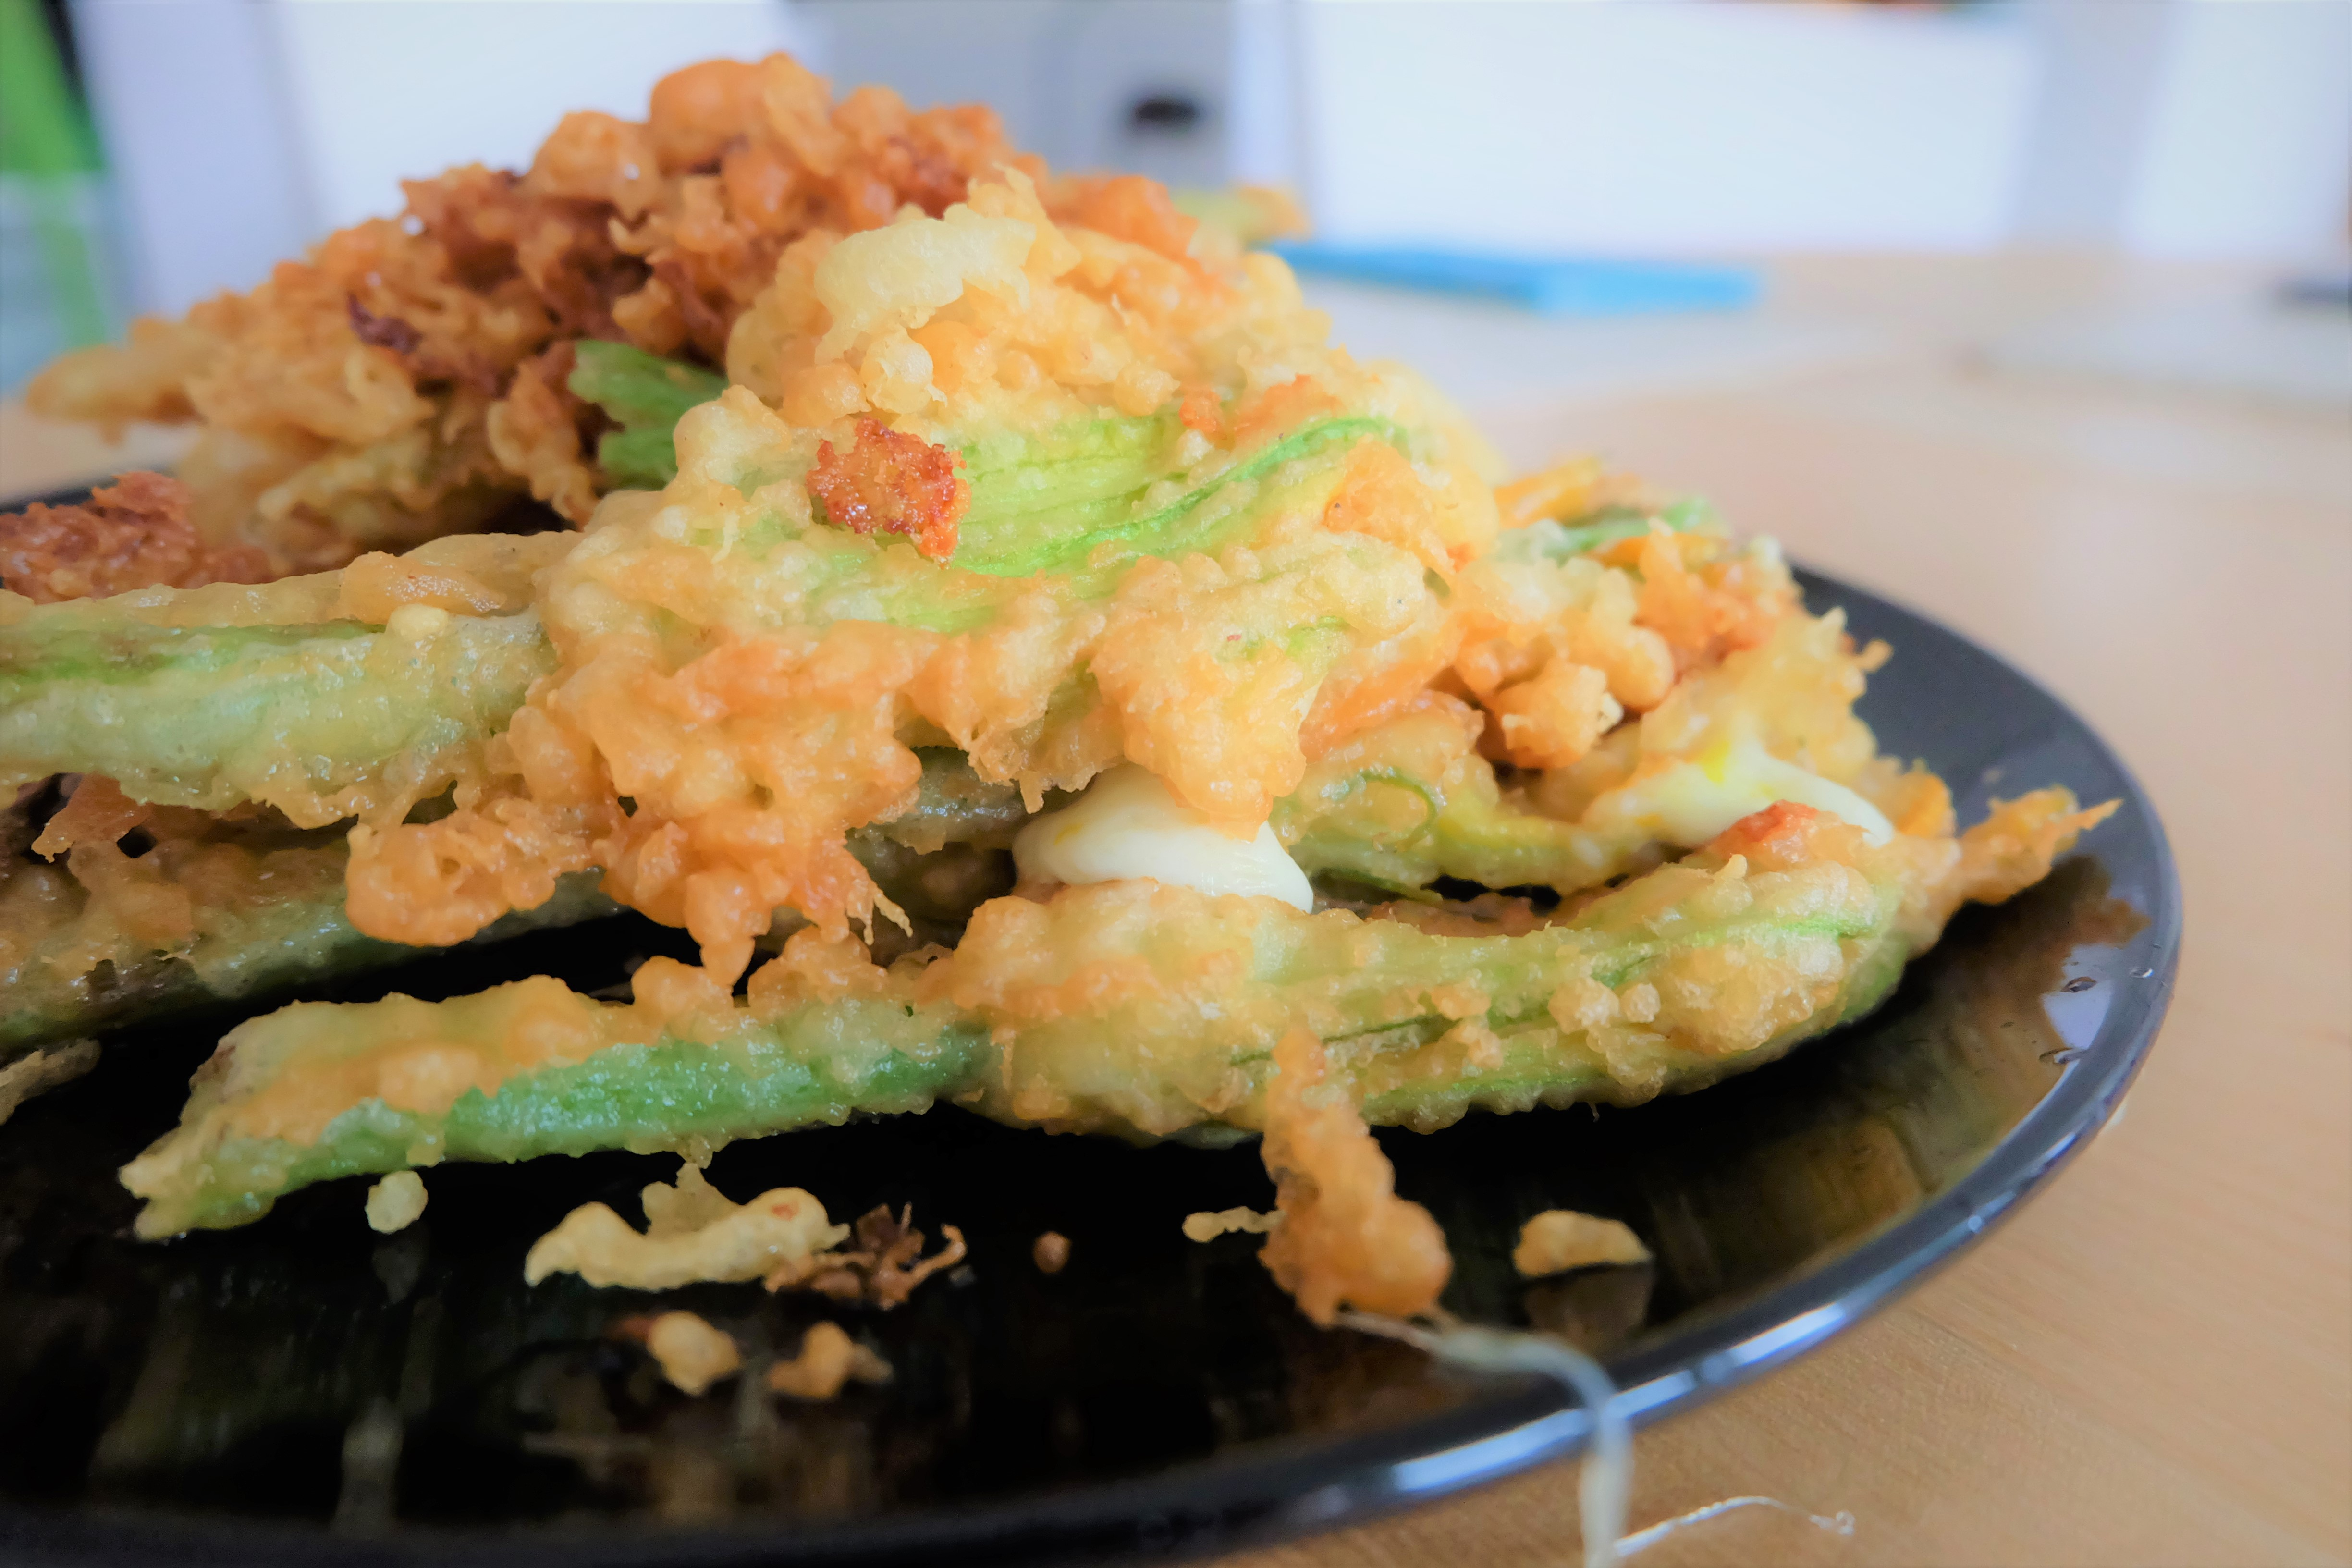 Carry It Like Harry - Fried courgette flowers - Fiori di zucca fritti